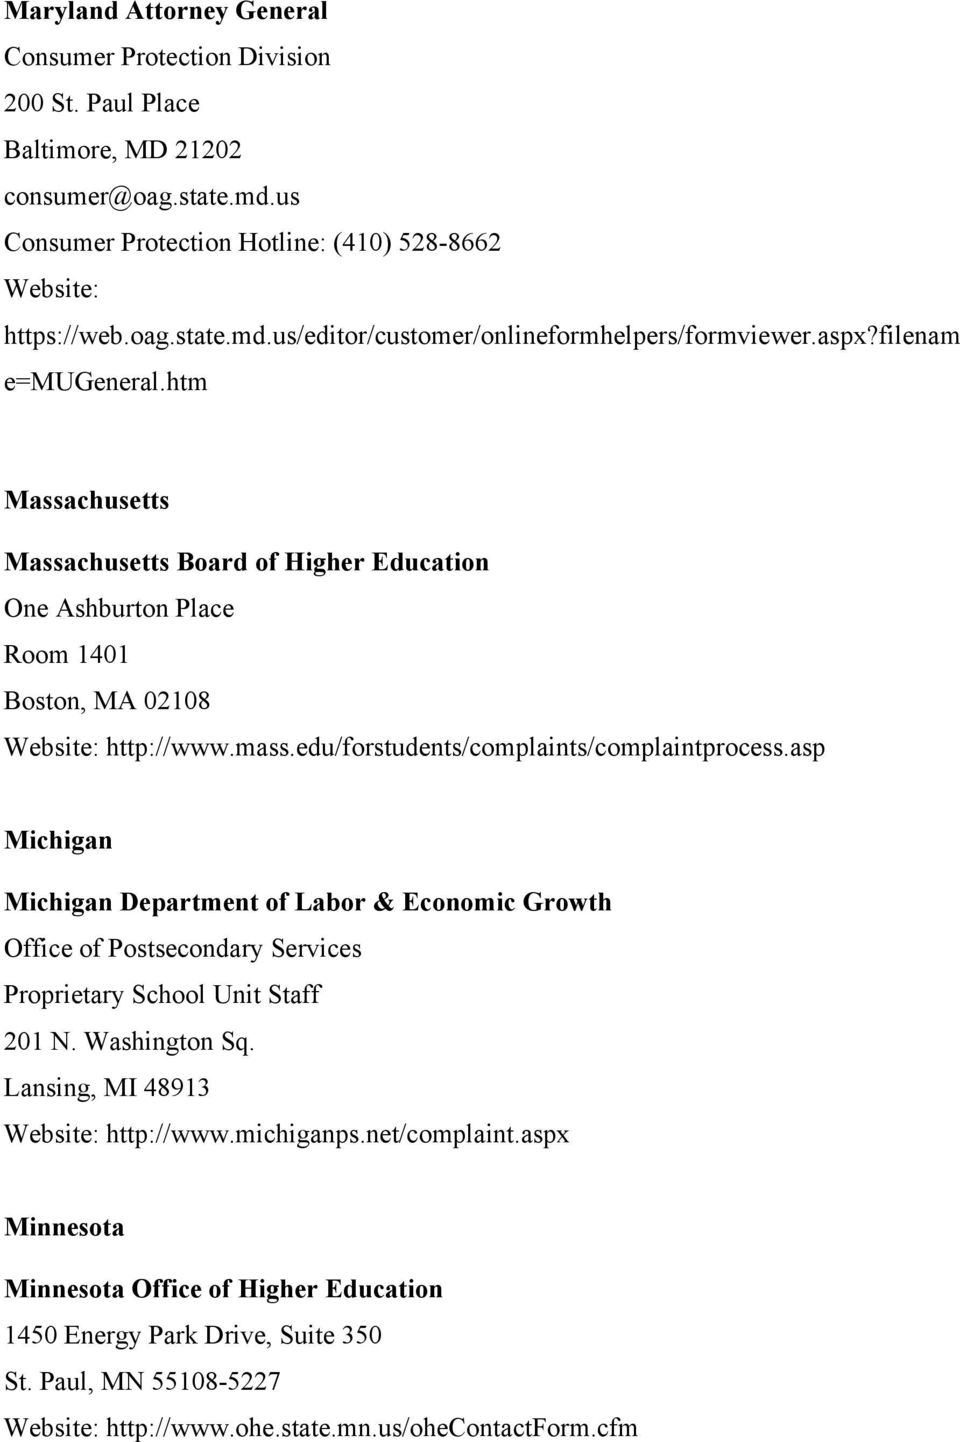 asp Michigan Michigan Department of Labor & Economic Growth Office of Postsecondary Services Proprietary School Unit Staff 201 N. Washington Sq. Lansing, MI 48913 http://www.michiganps.